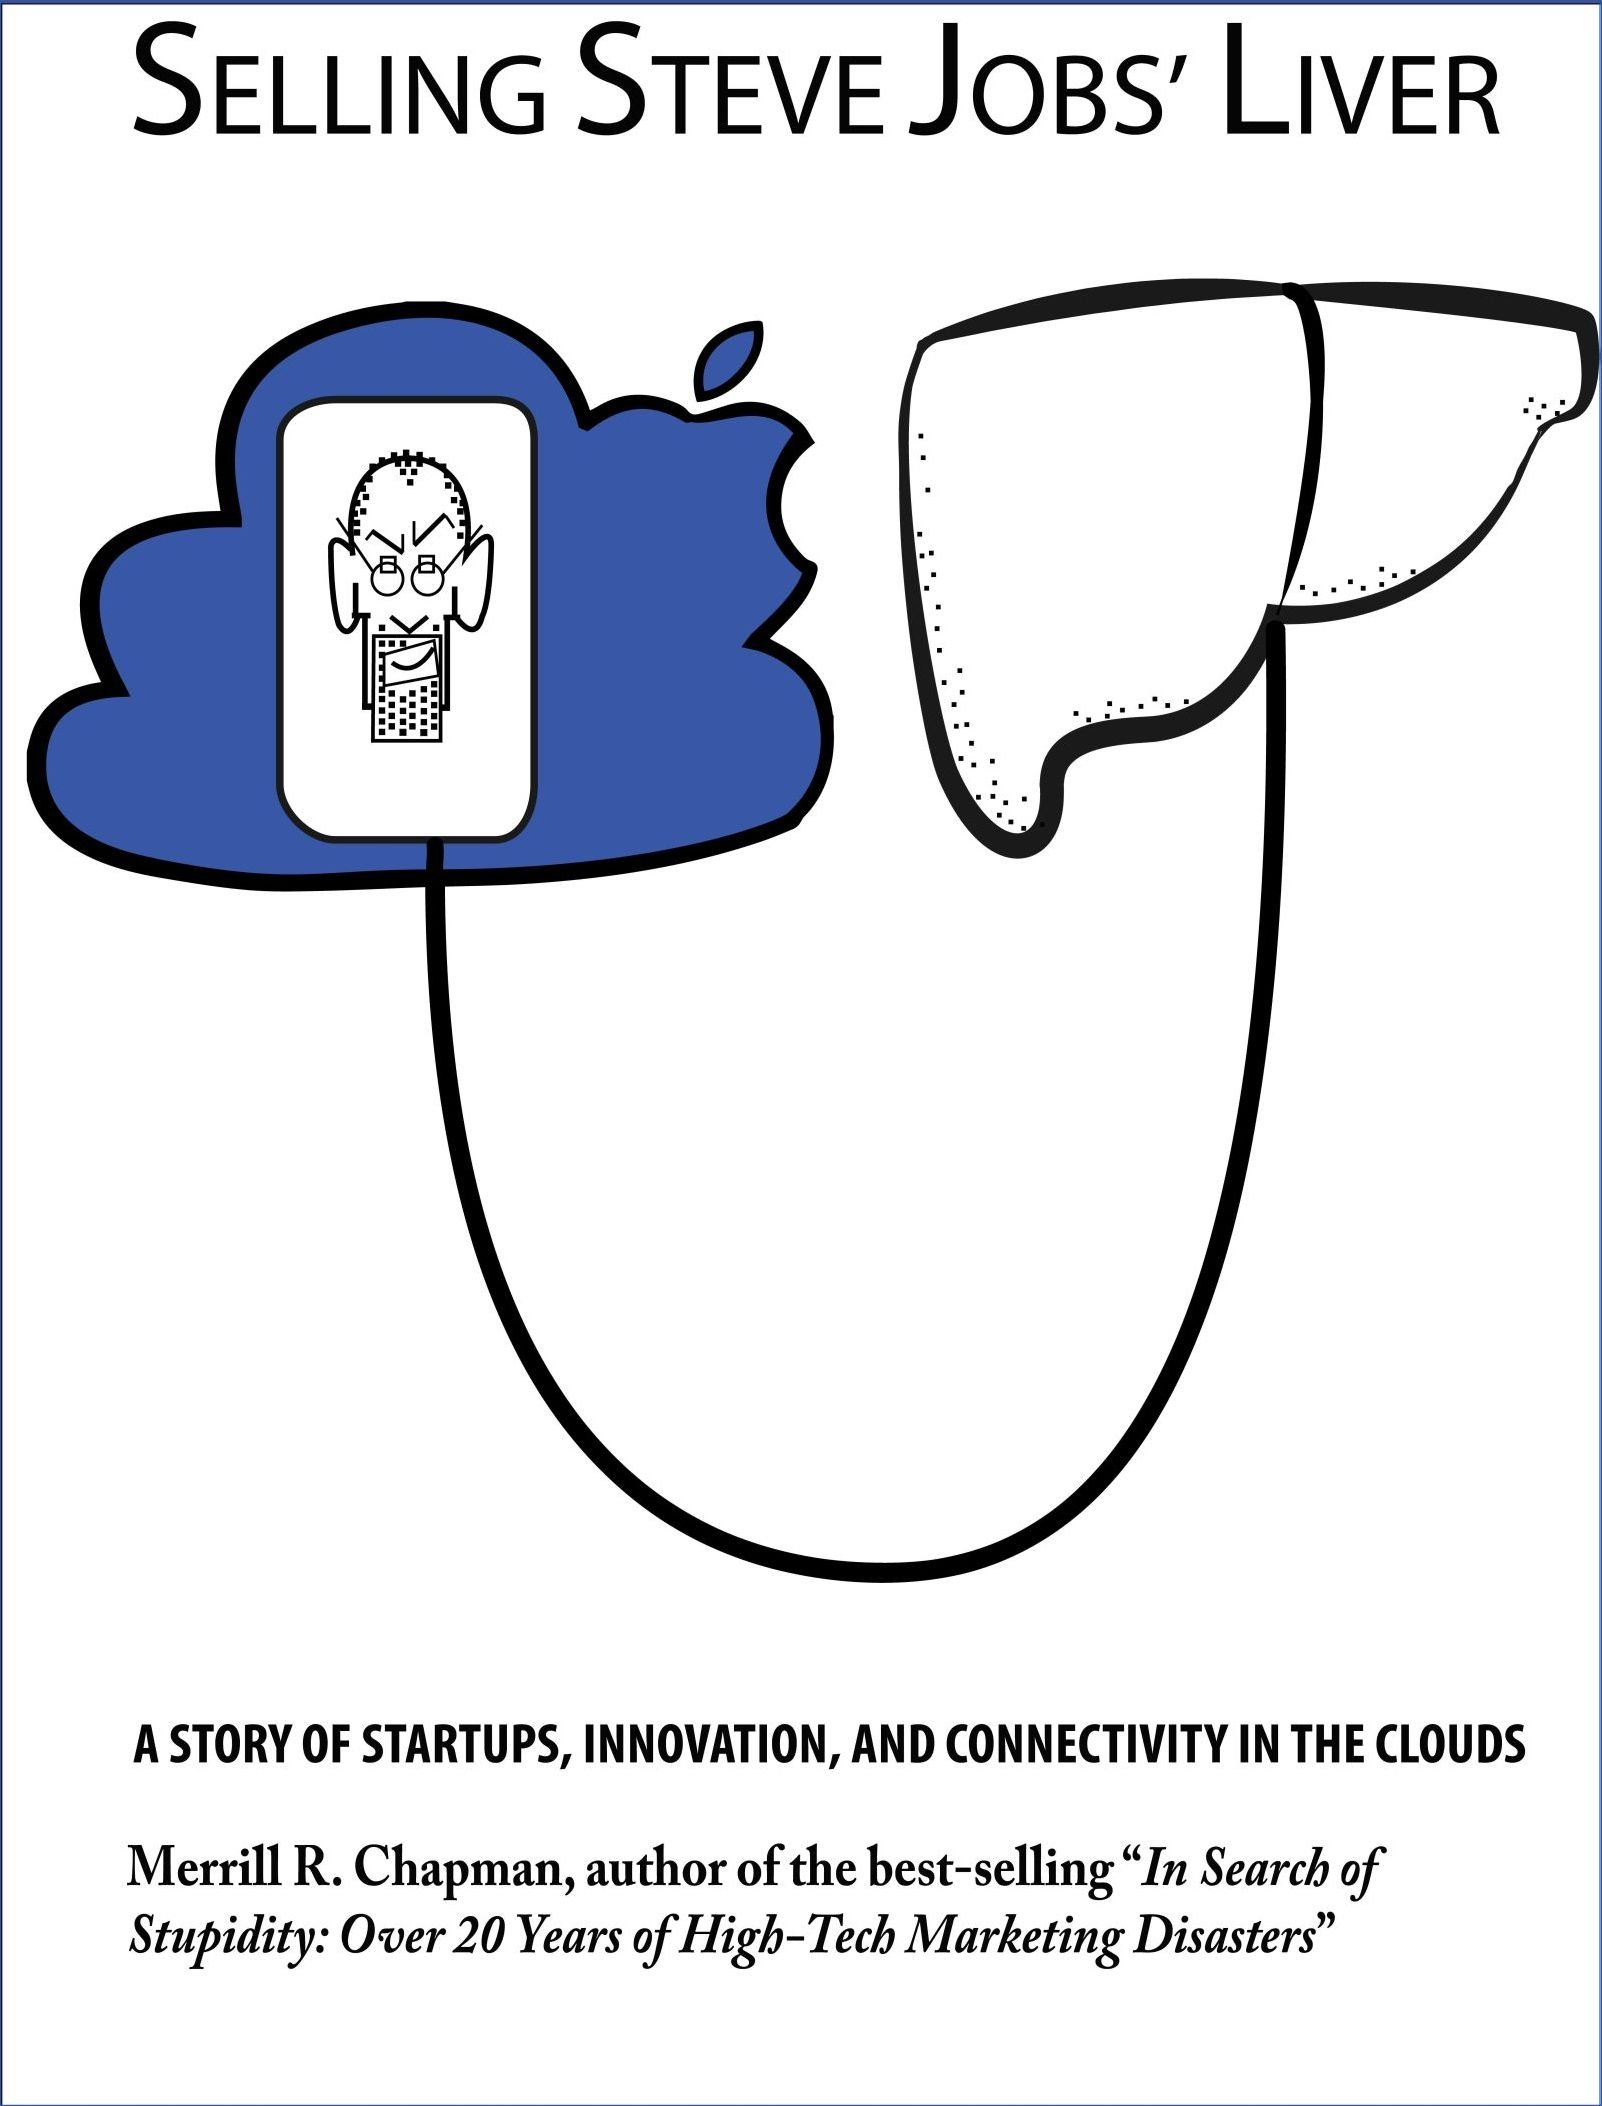 Selling Steve Jobs' Liver: A Story of Startups, Innovation, and Connectivity in the Clouds